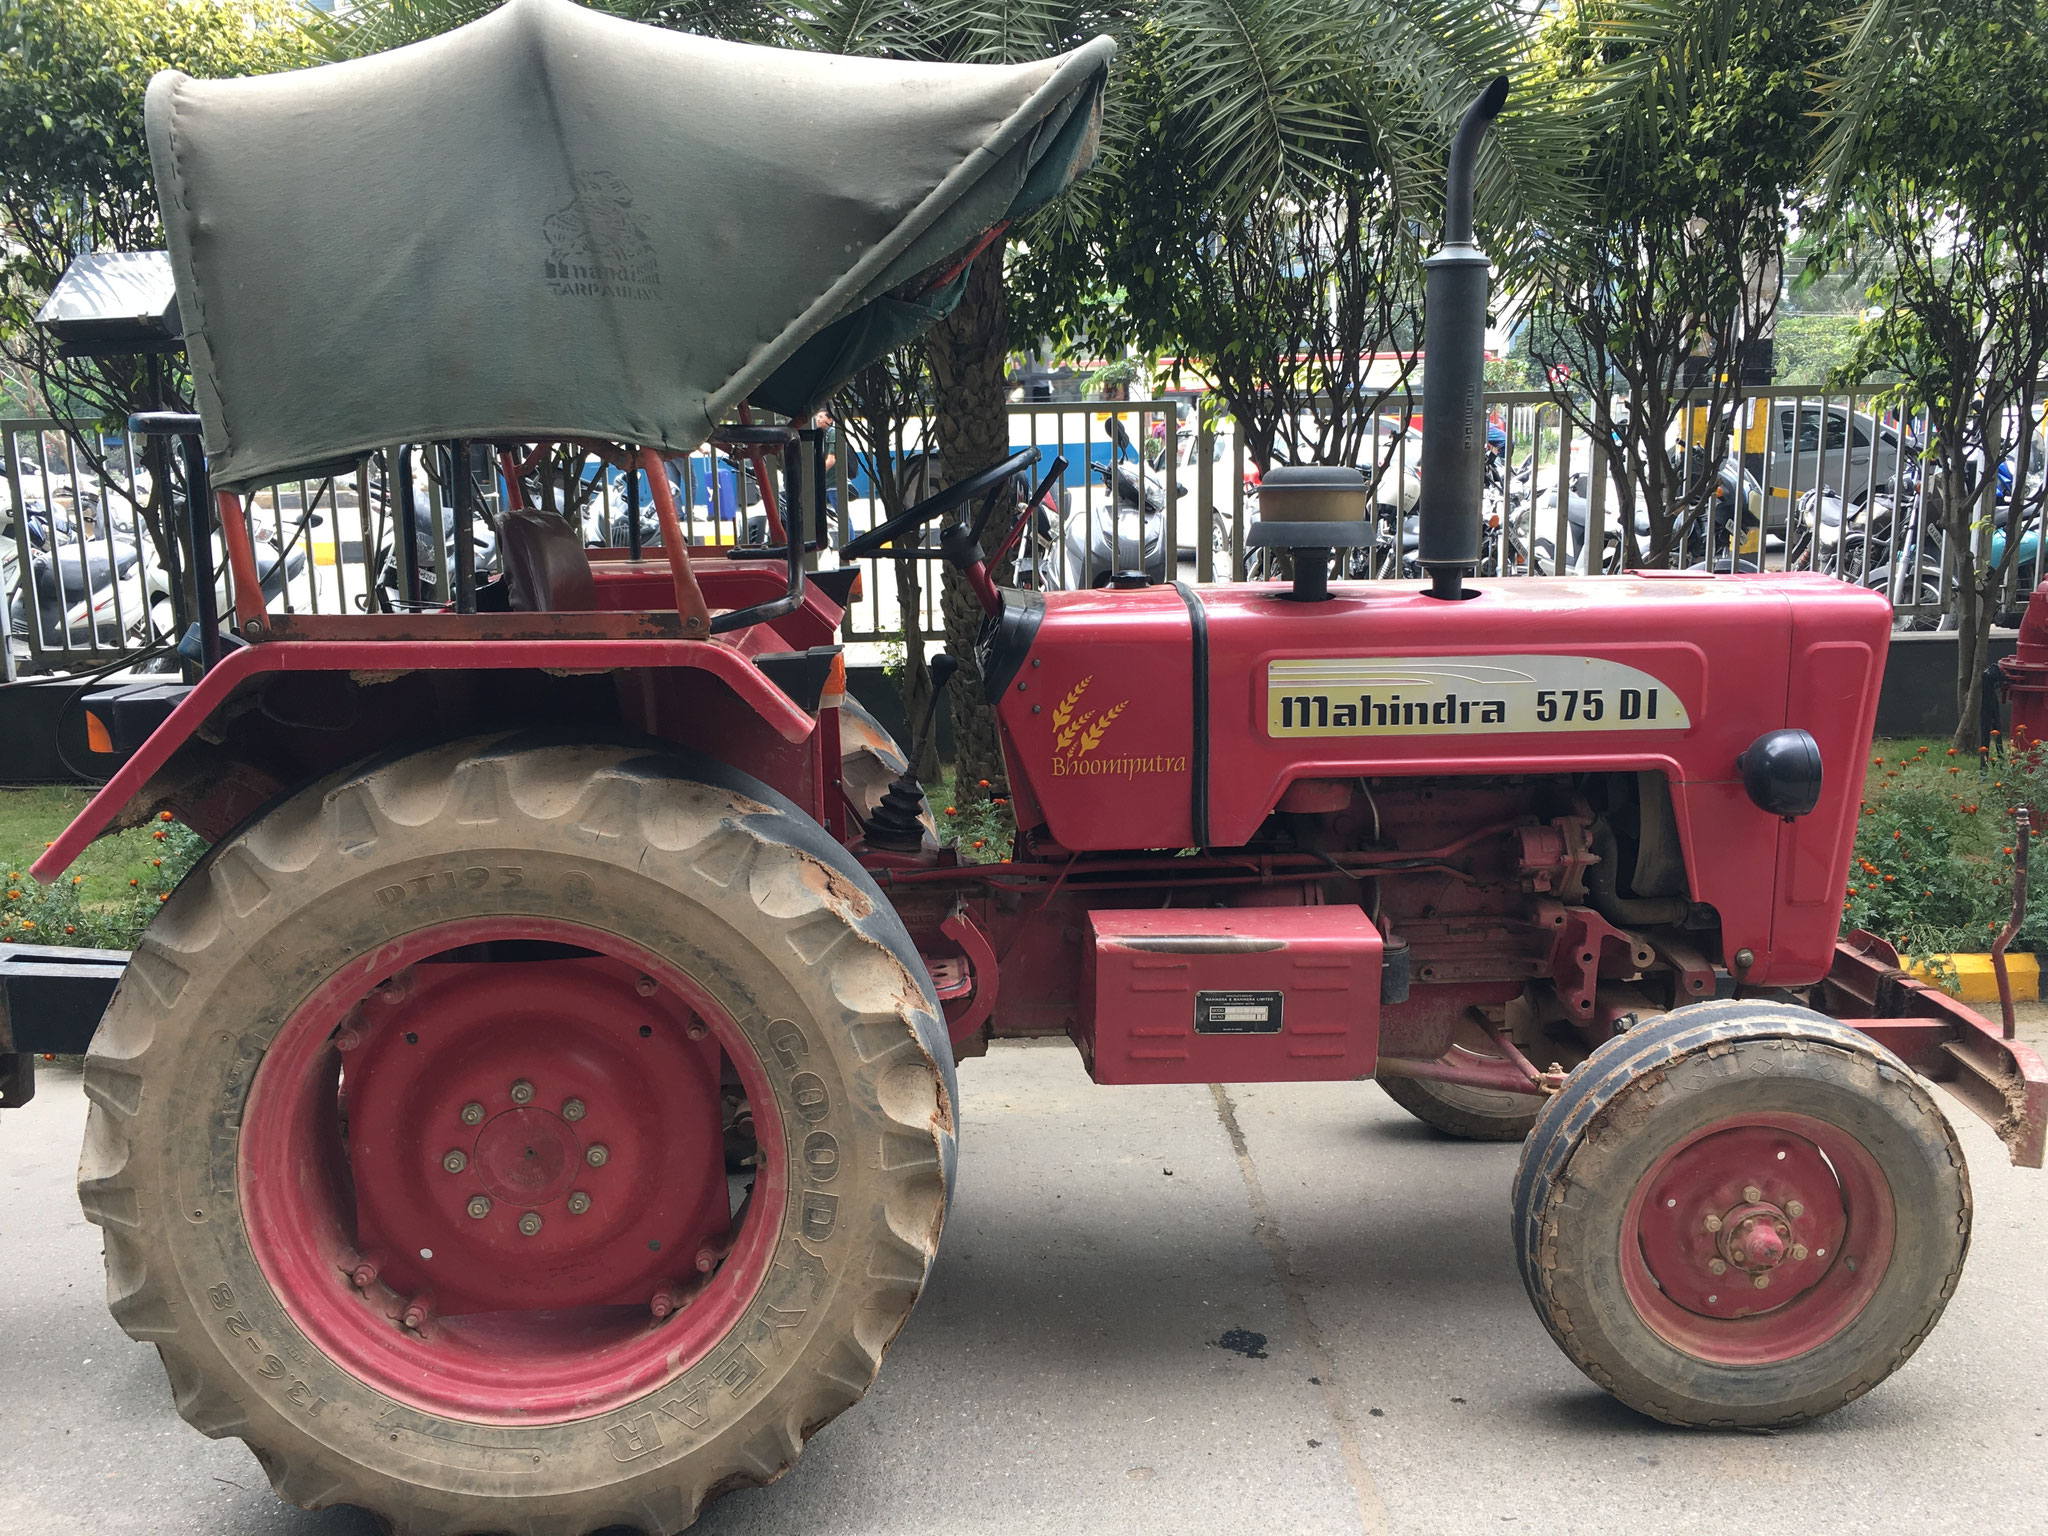 Mahindra 575 DI in Bangalore